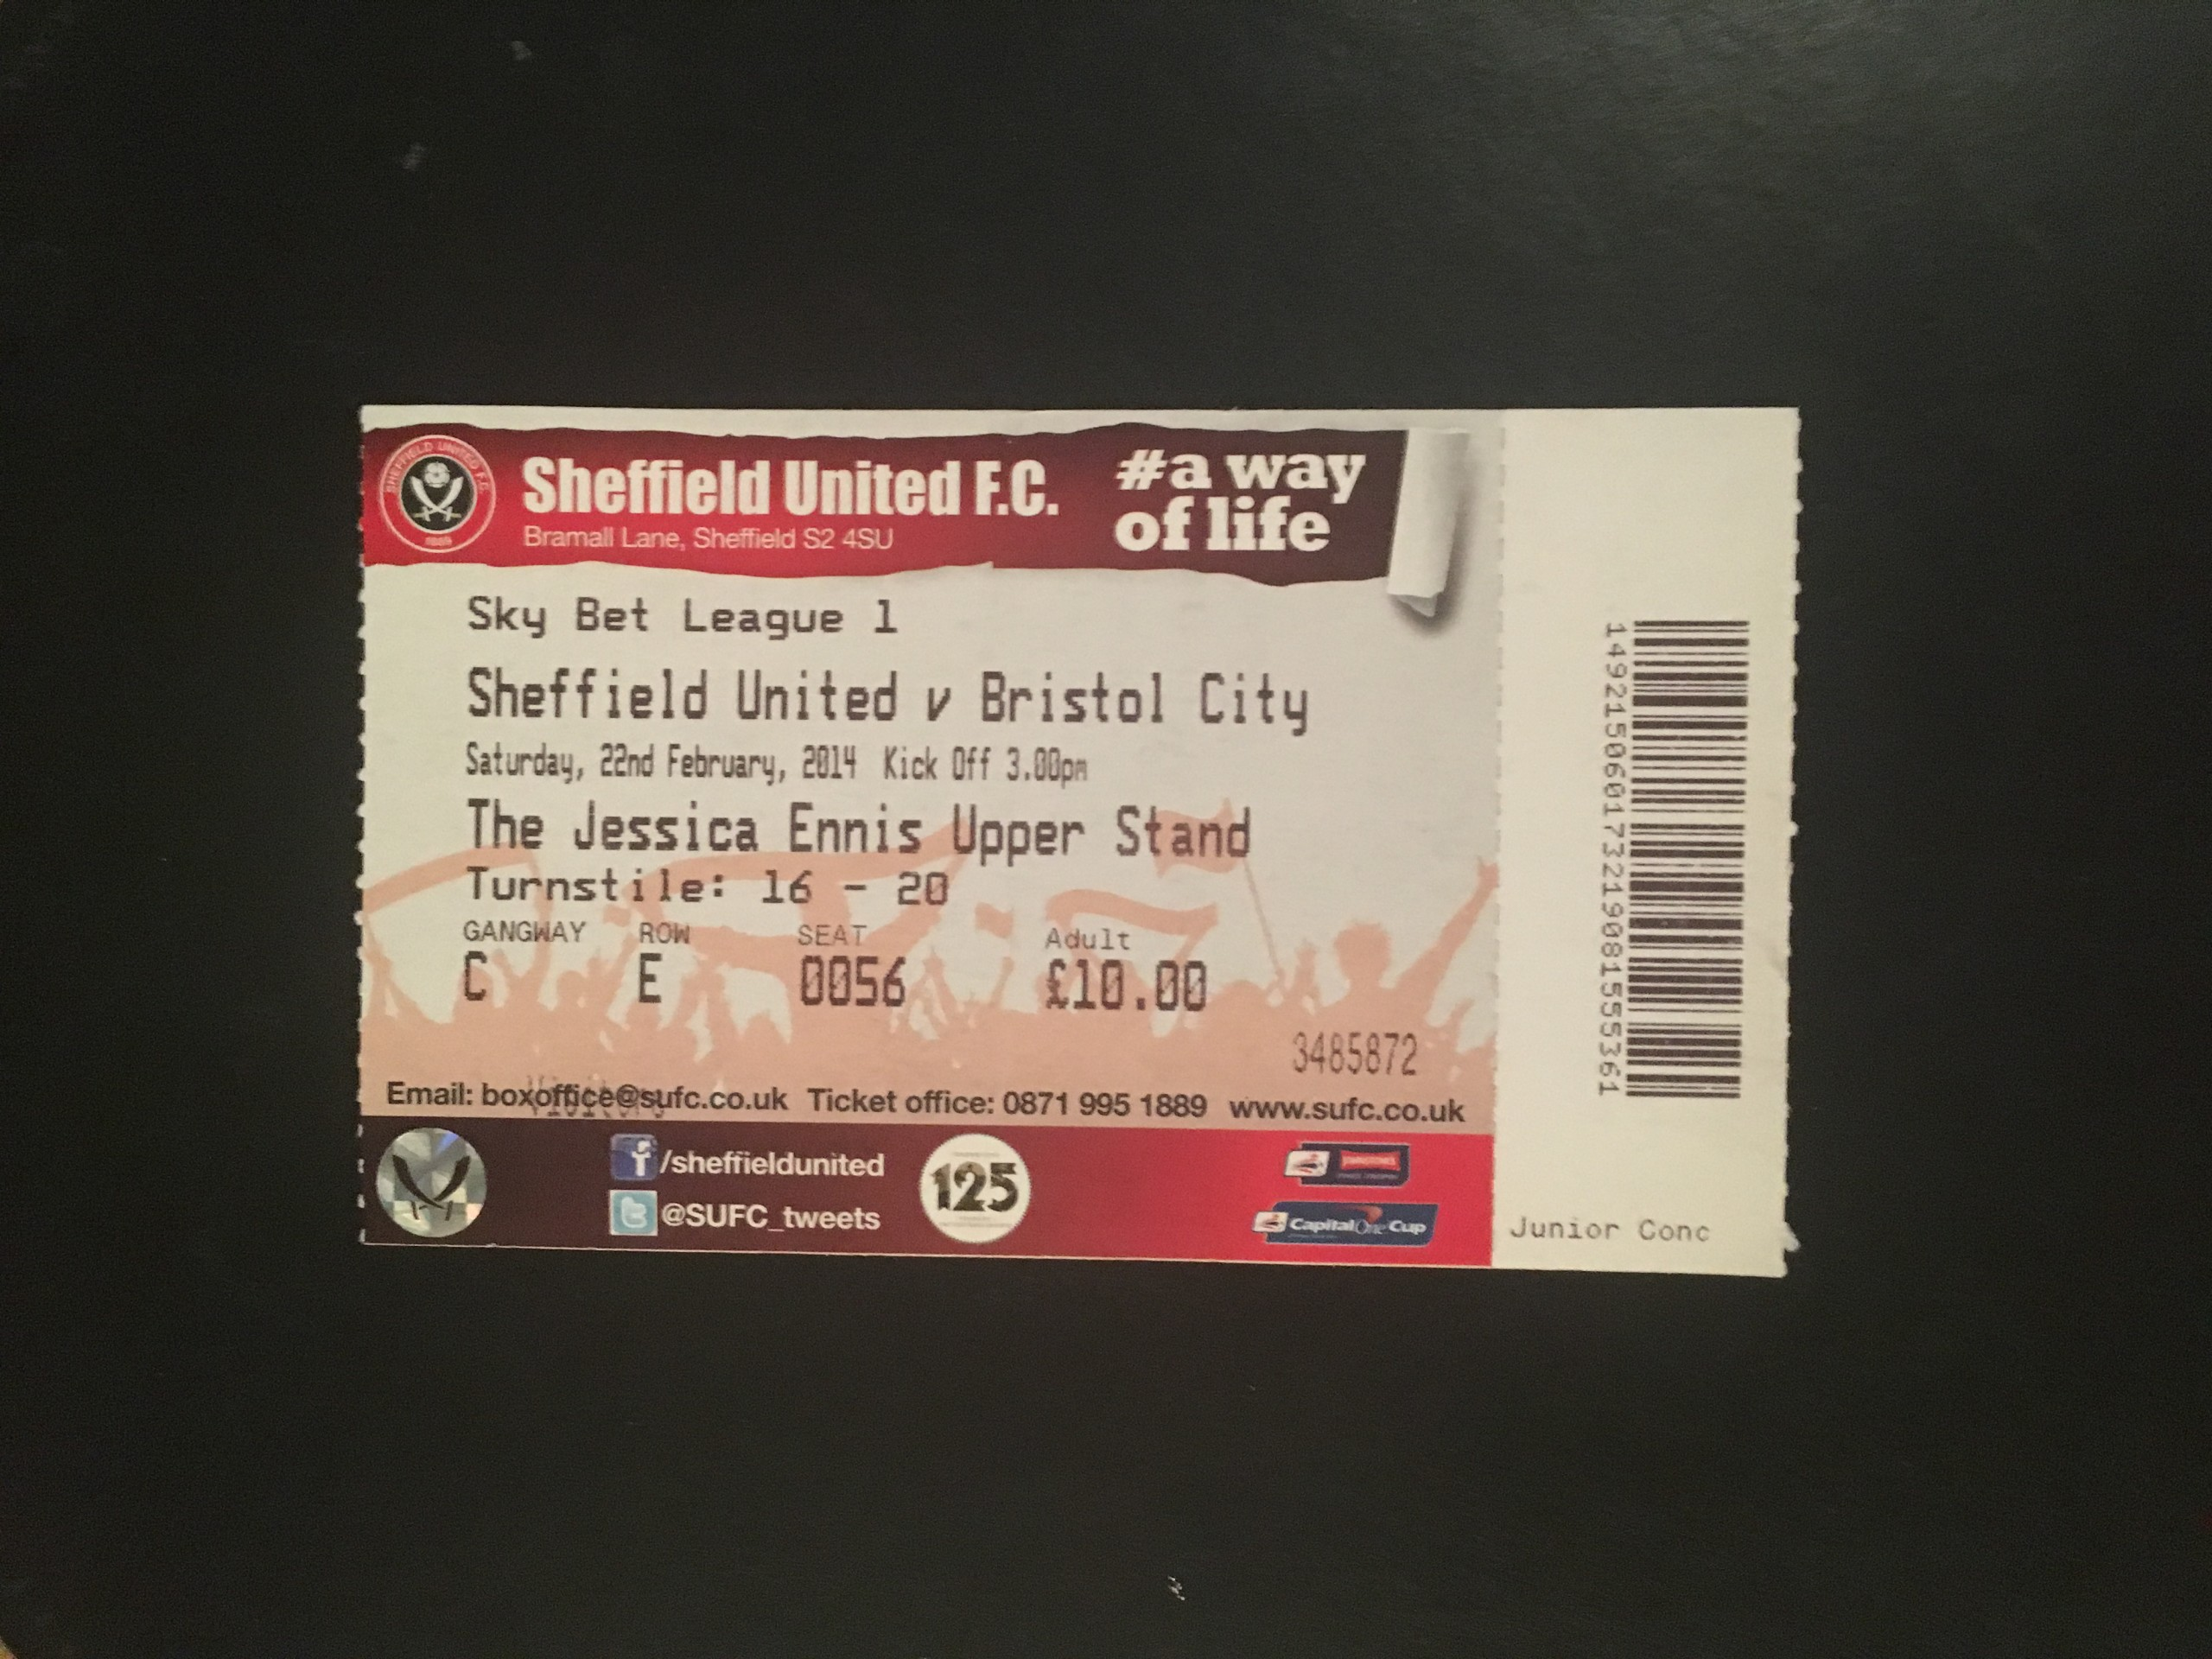 Sheffield United v Bristol City 22-02-2014 Ticket